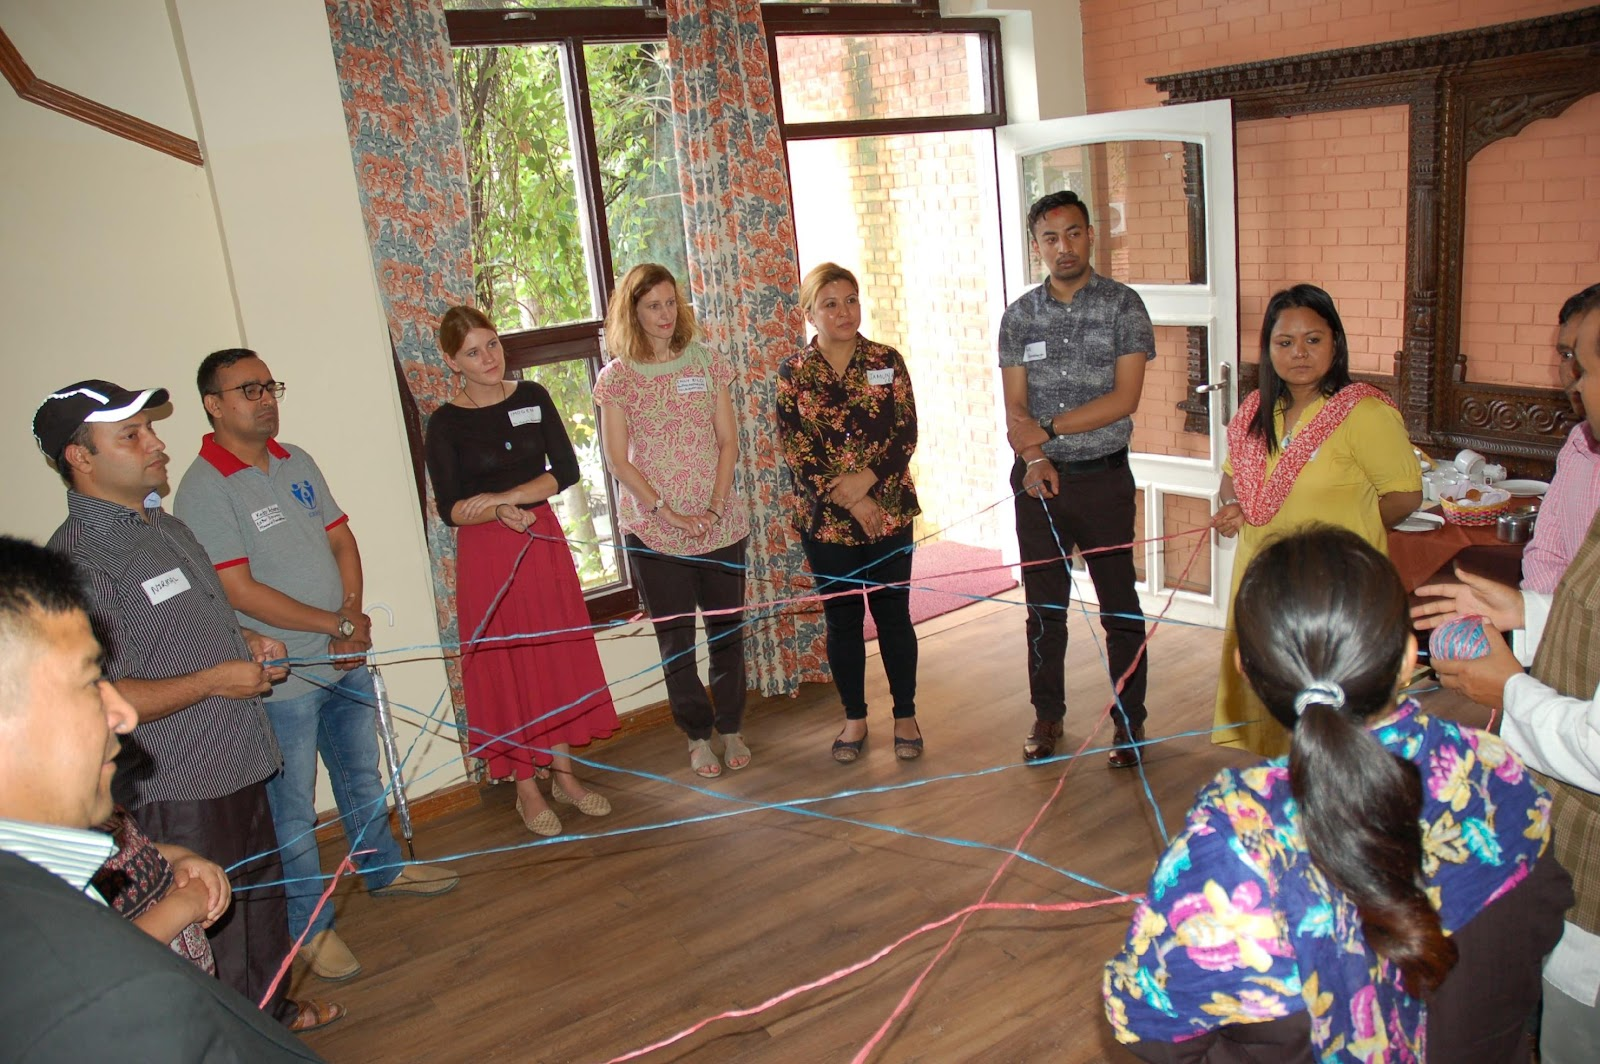 spider web ice breaker to demonstrate the power of collaboration